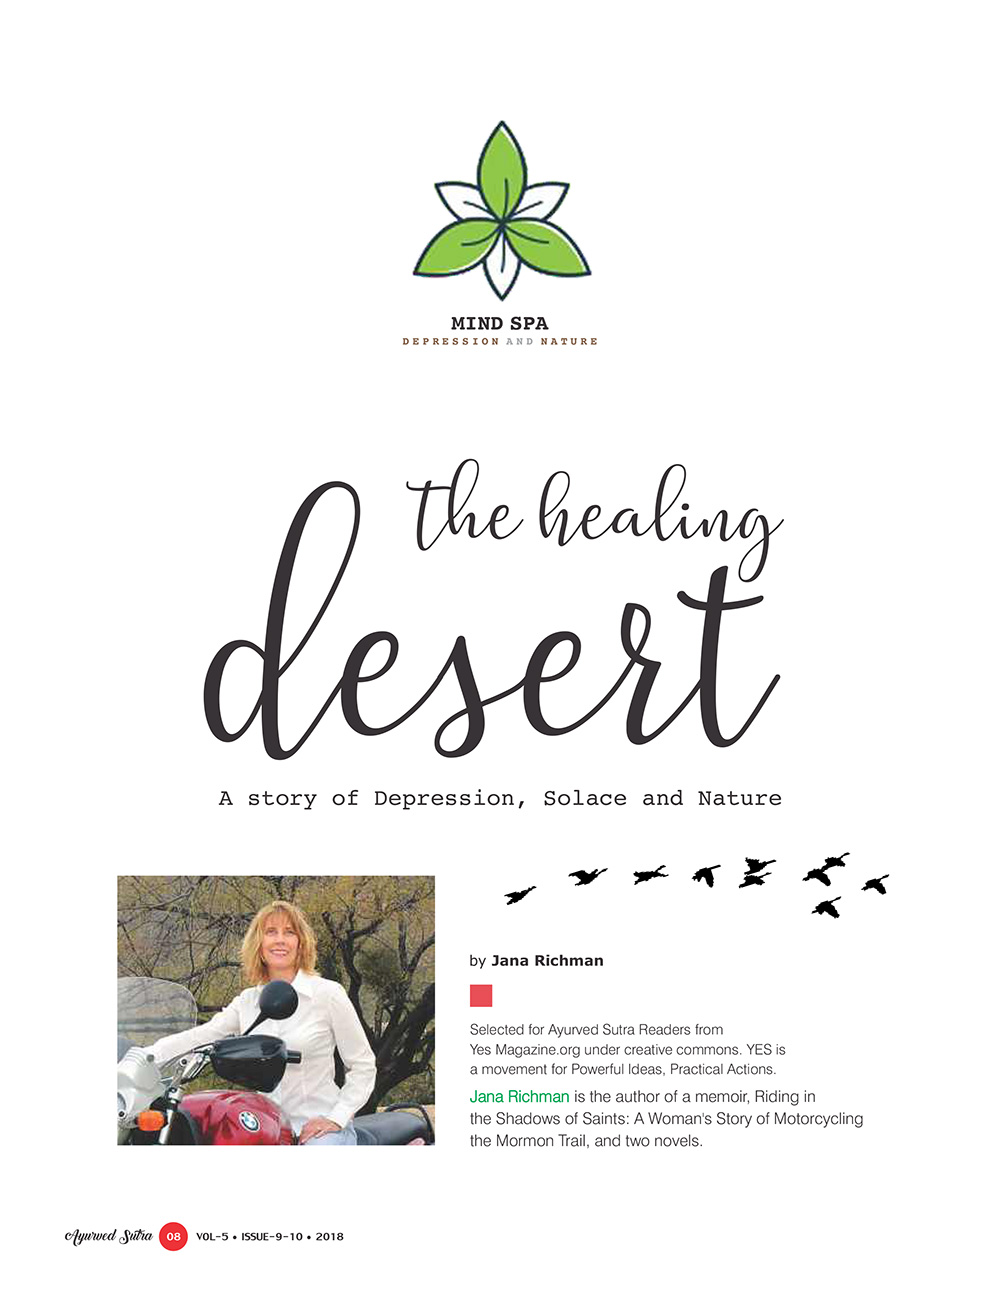 Ayurvedsutra Vol 05 issue 09 10 10 - The Healing Desert